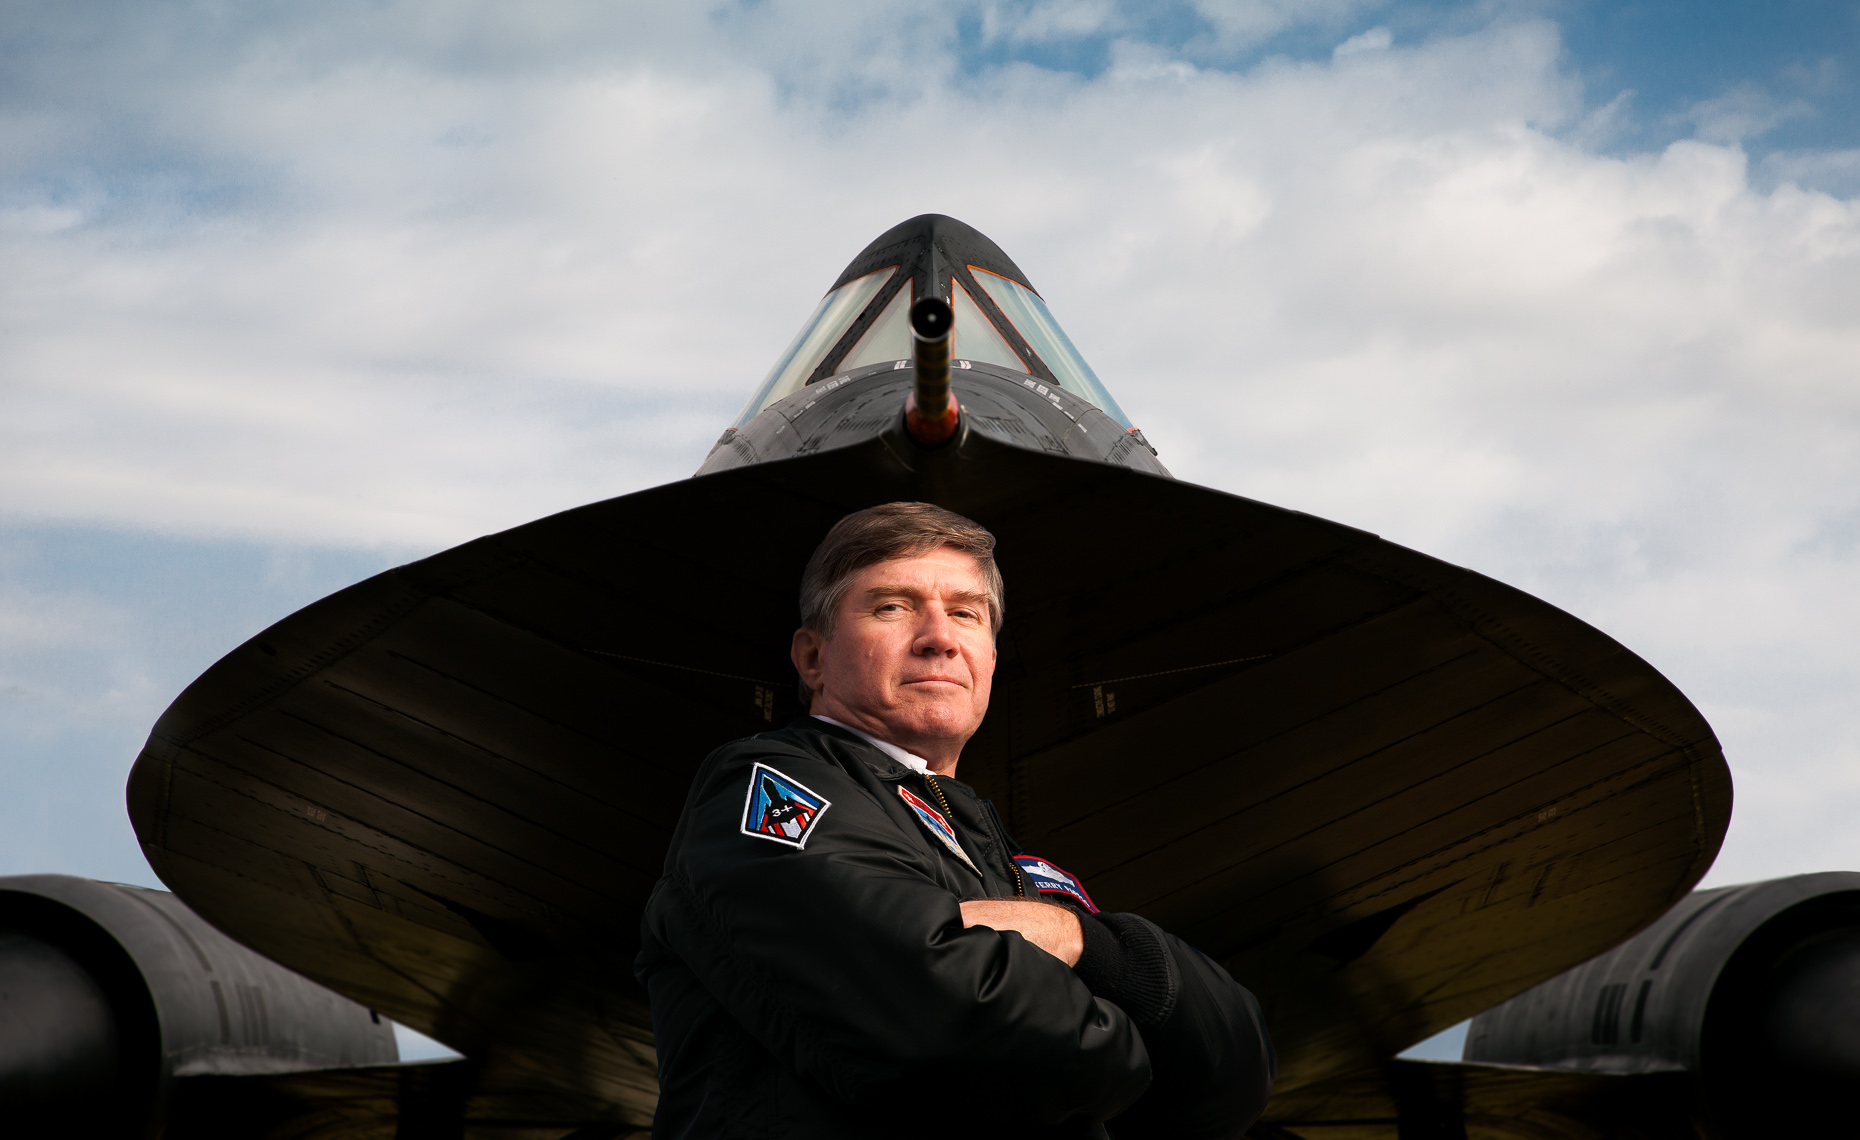 SR71 BLACKBIRD PILOT SEALE